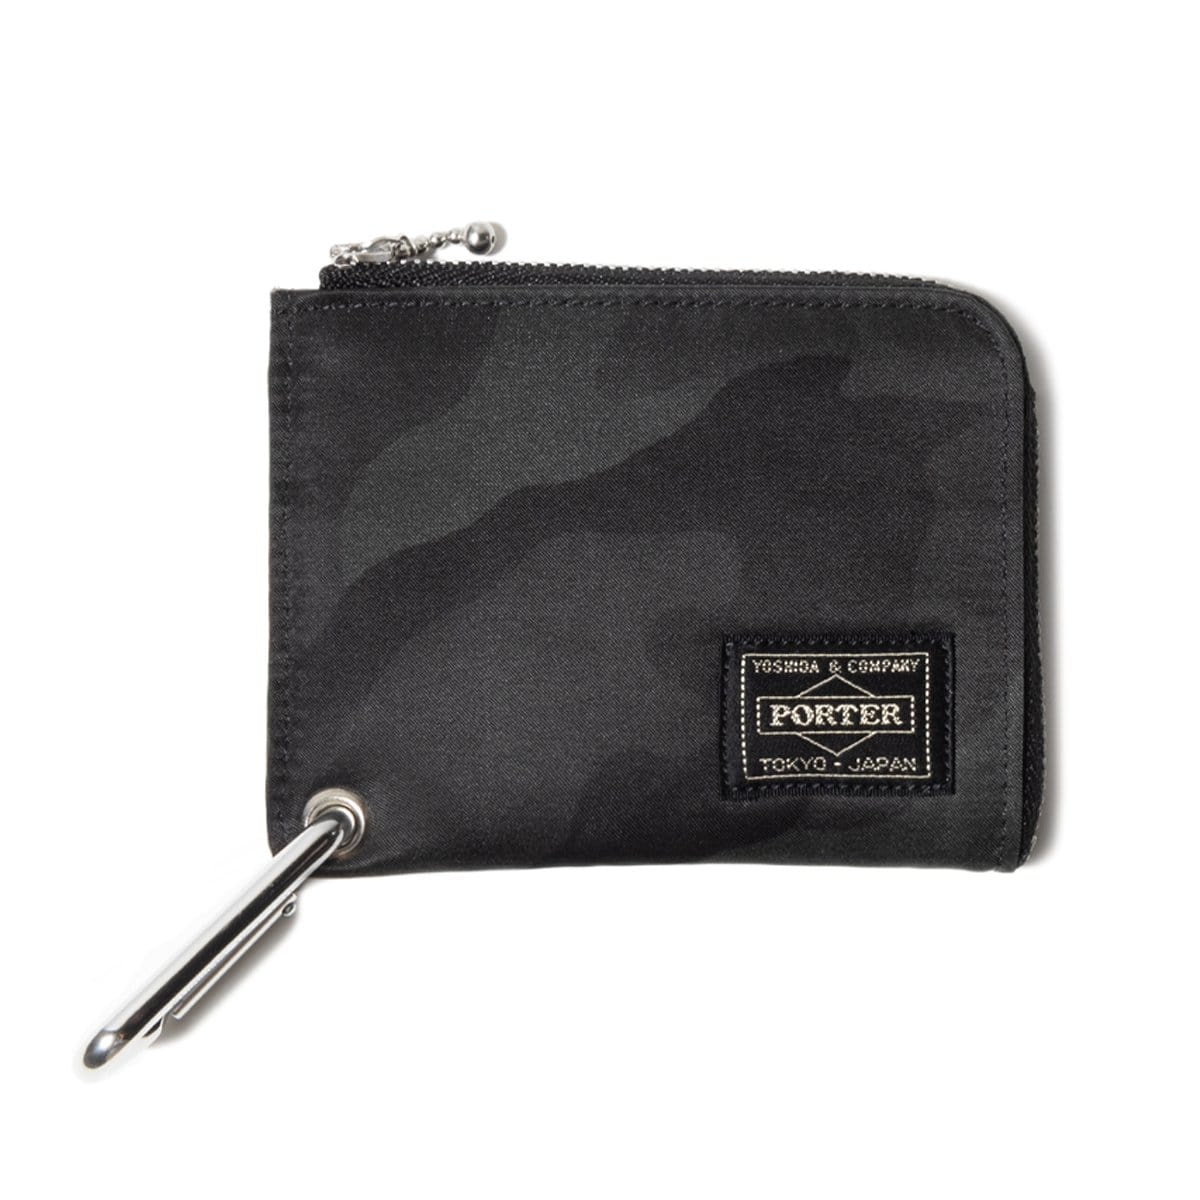 Porter Yoshida Bags & Accessories BLACK / O/S MULTI WALLET